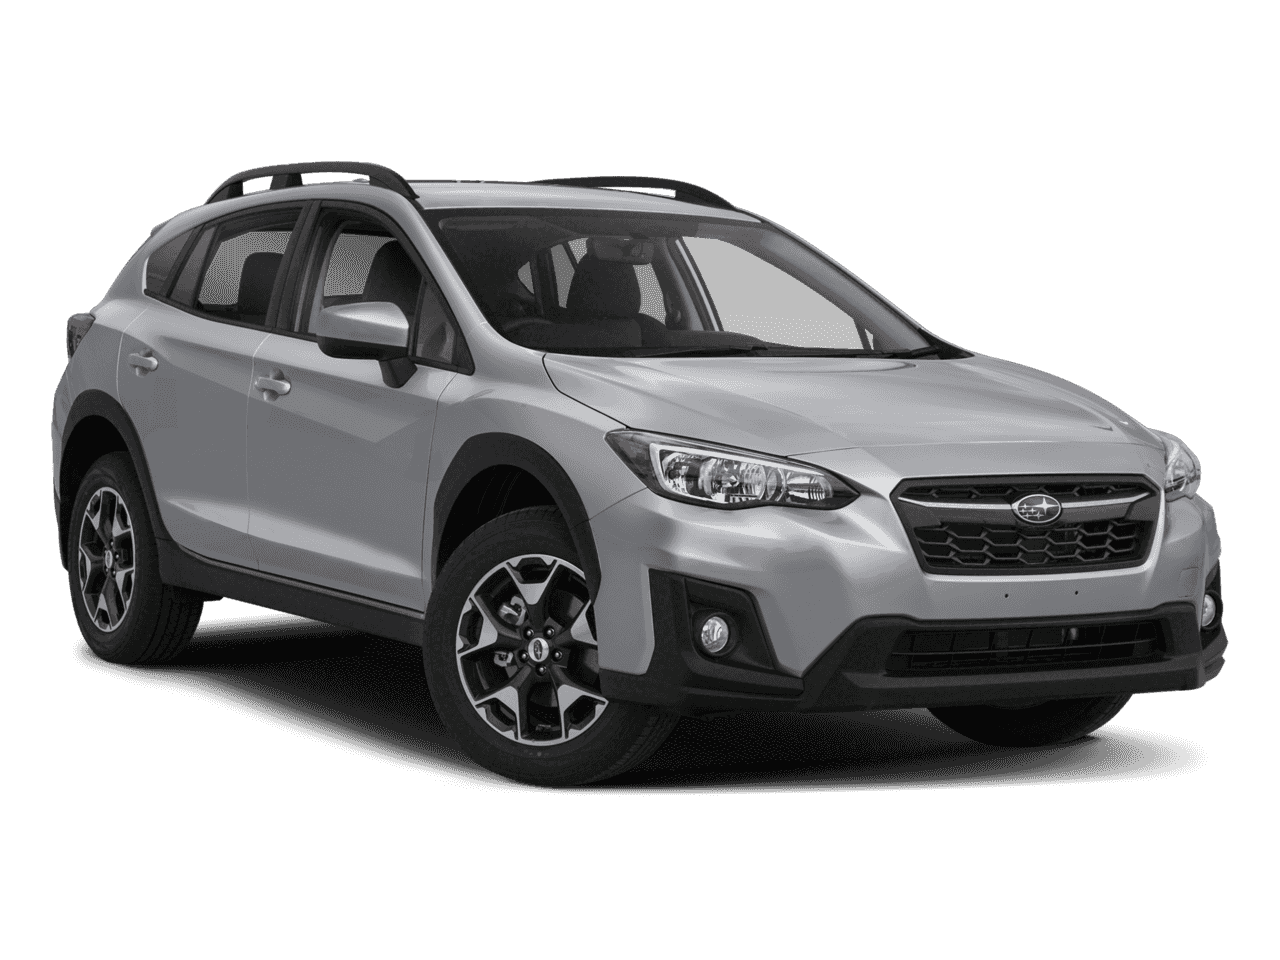 New Subaru Crosstrek 2.0i